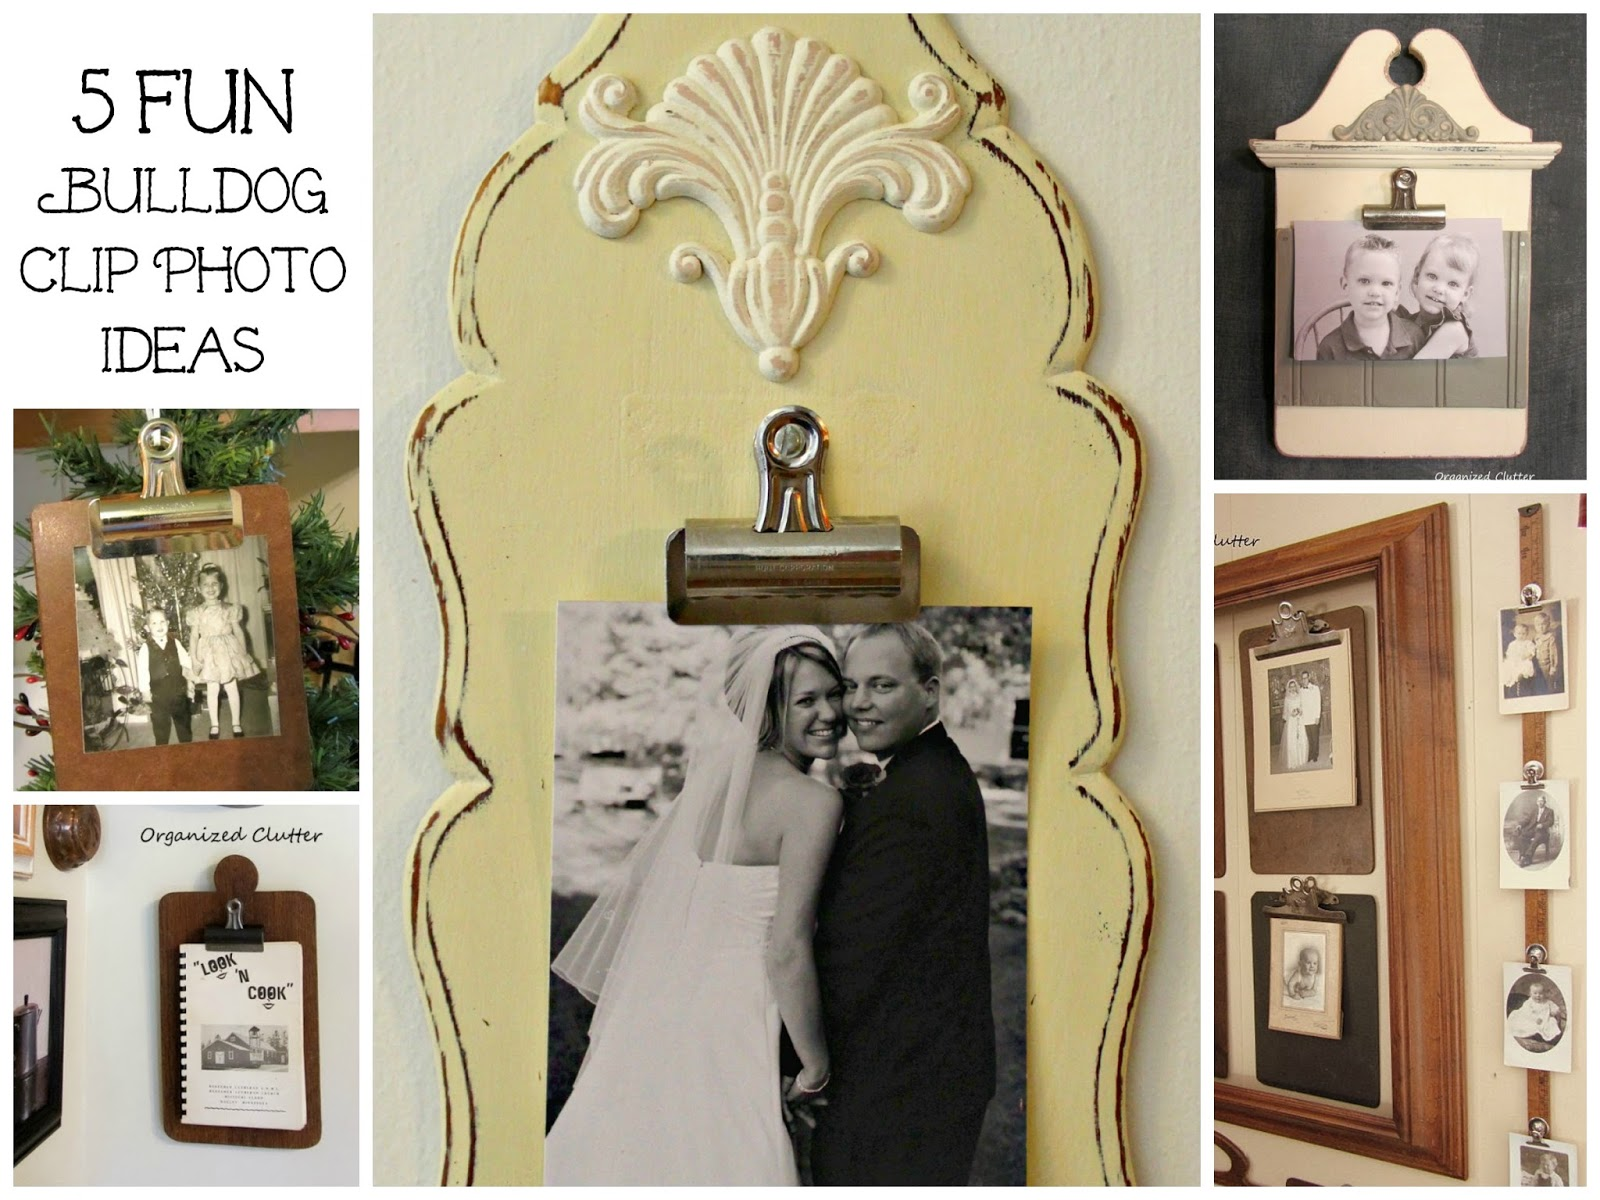 Photo Display Ideas with Thrift Shop Finds & Bulldog Clips www.organizedclutterqueen.blogspot.com